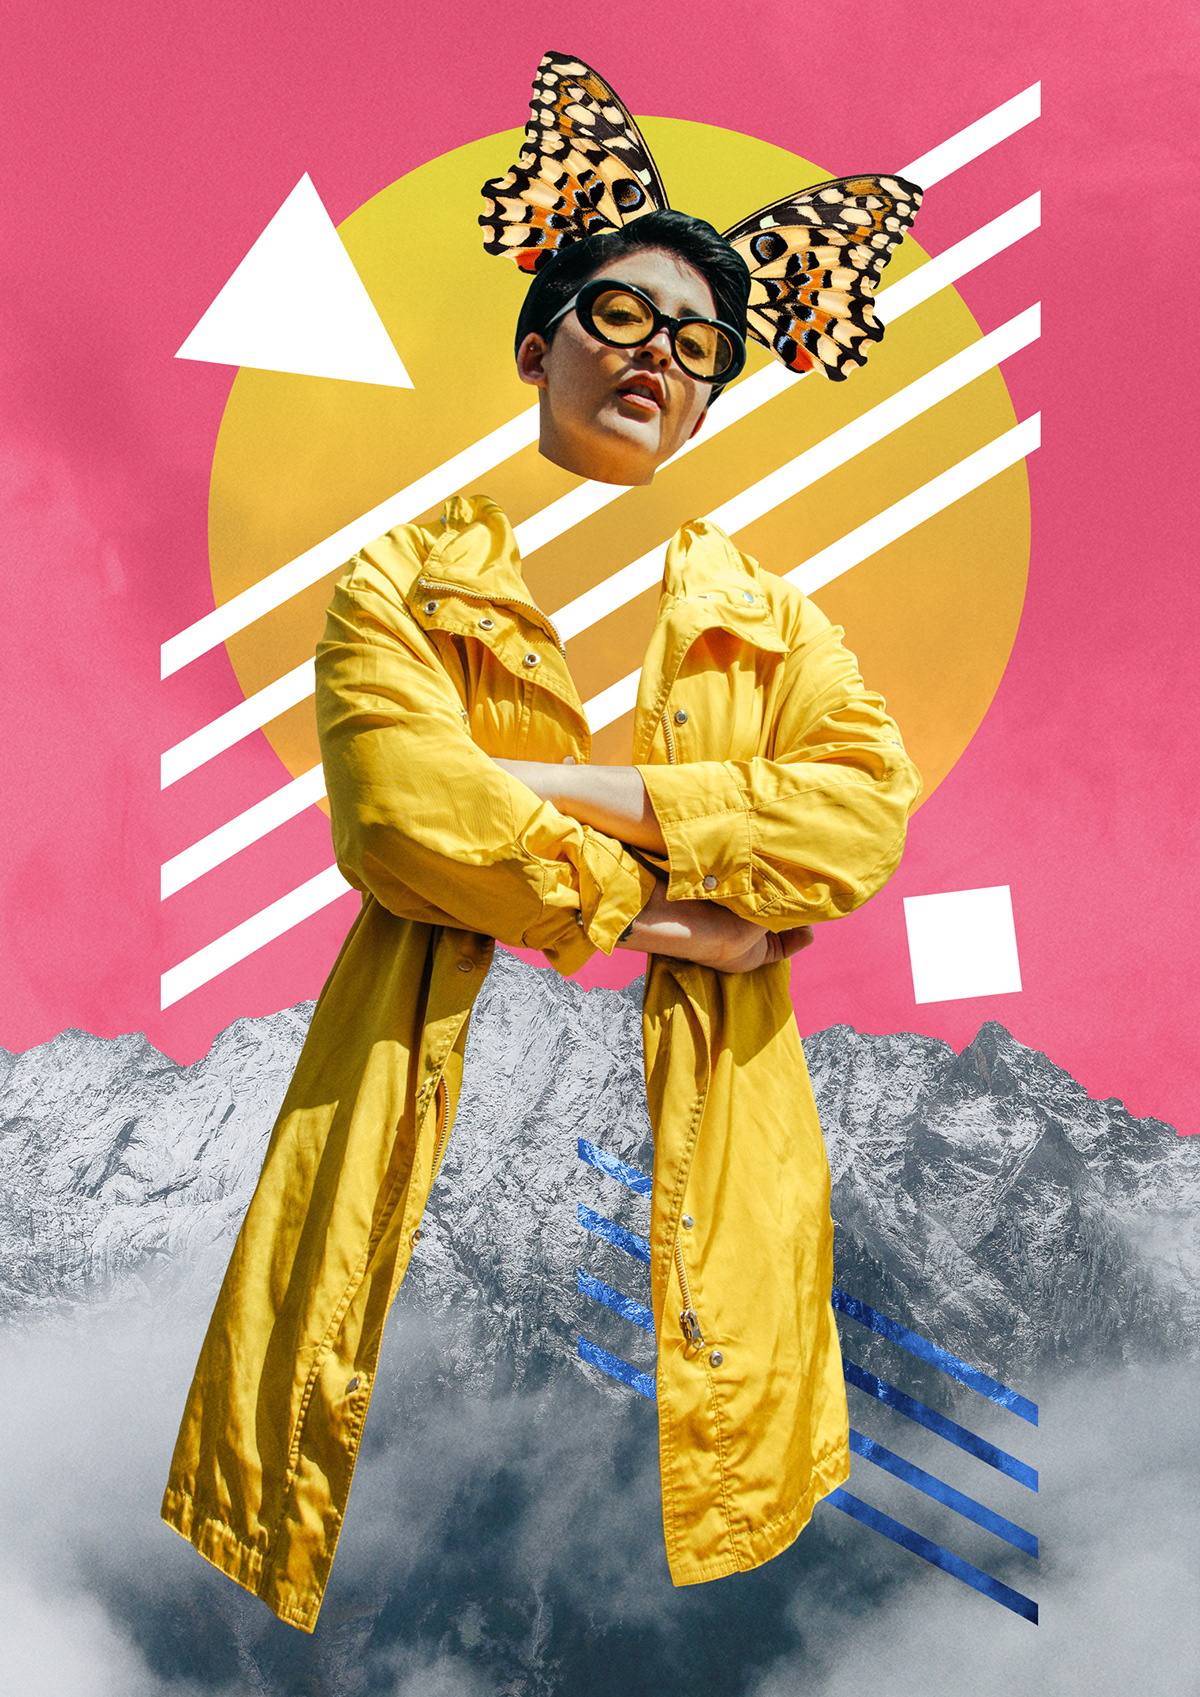 collage graphic design  ILLUSTRATION  Adobe Portfolio poster posters colors butterfly wings coat